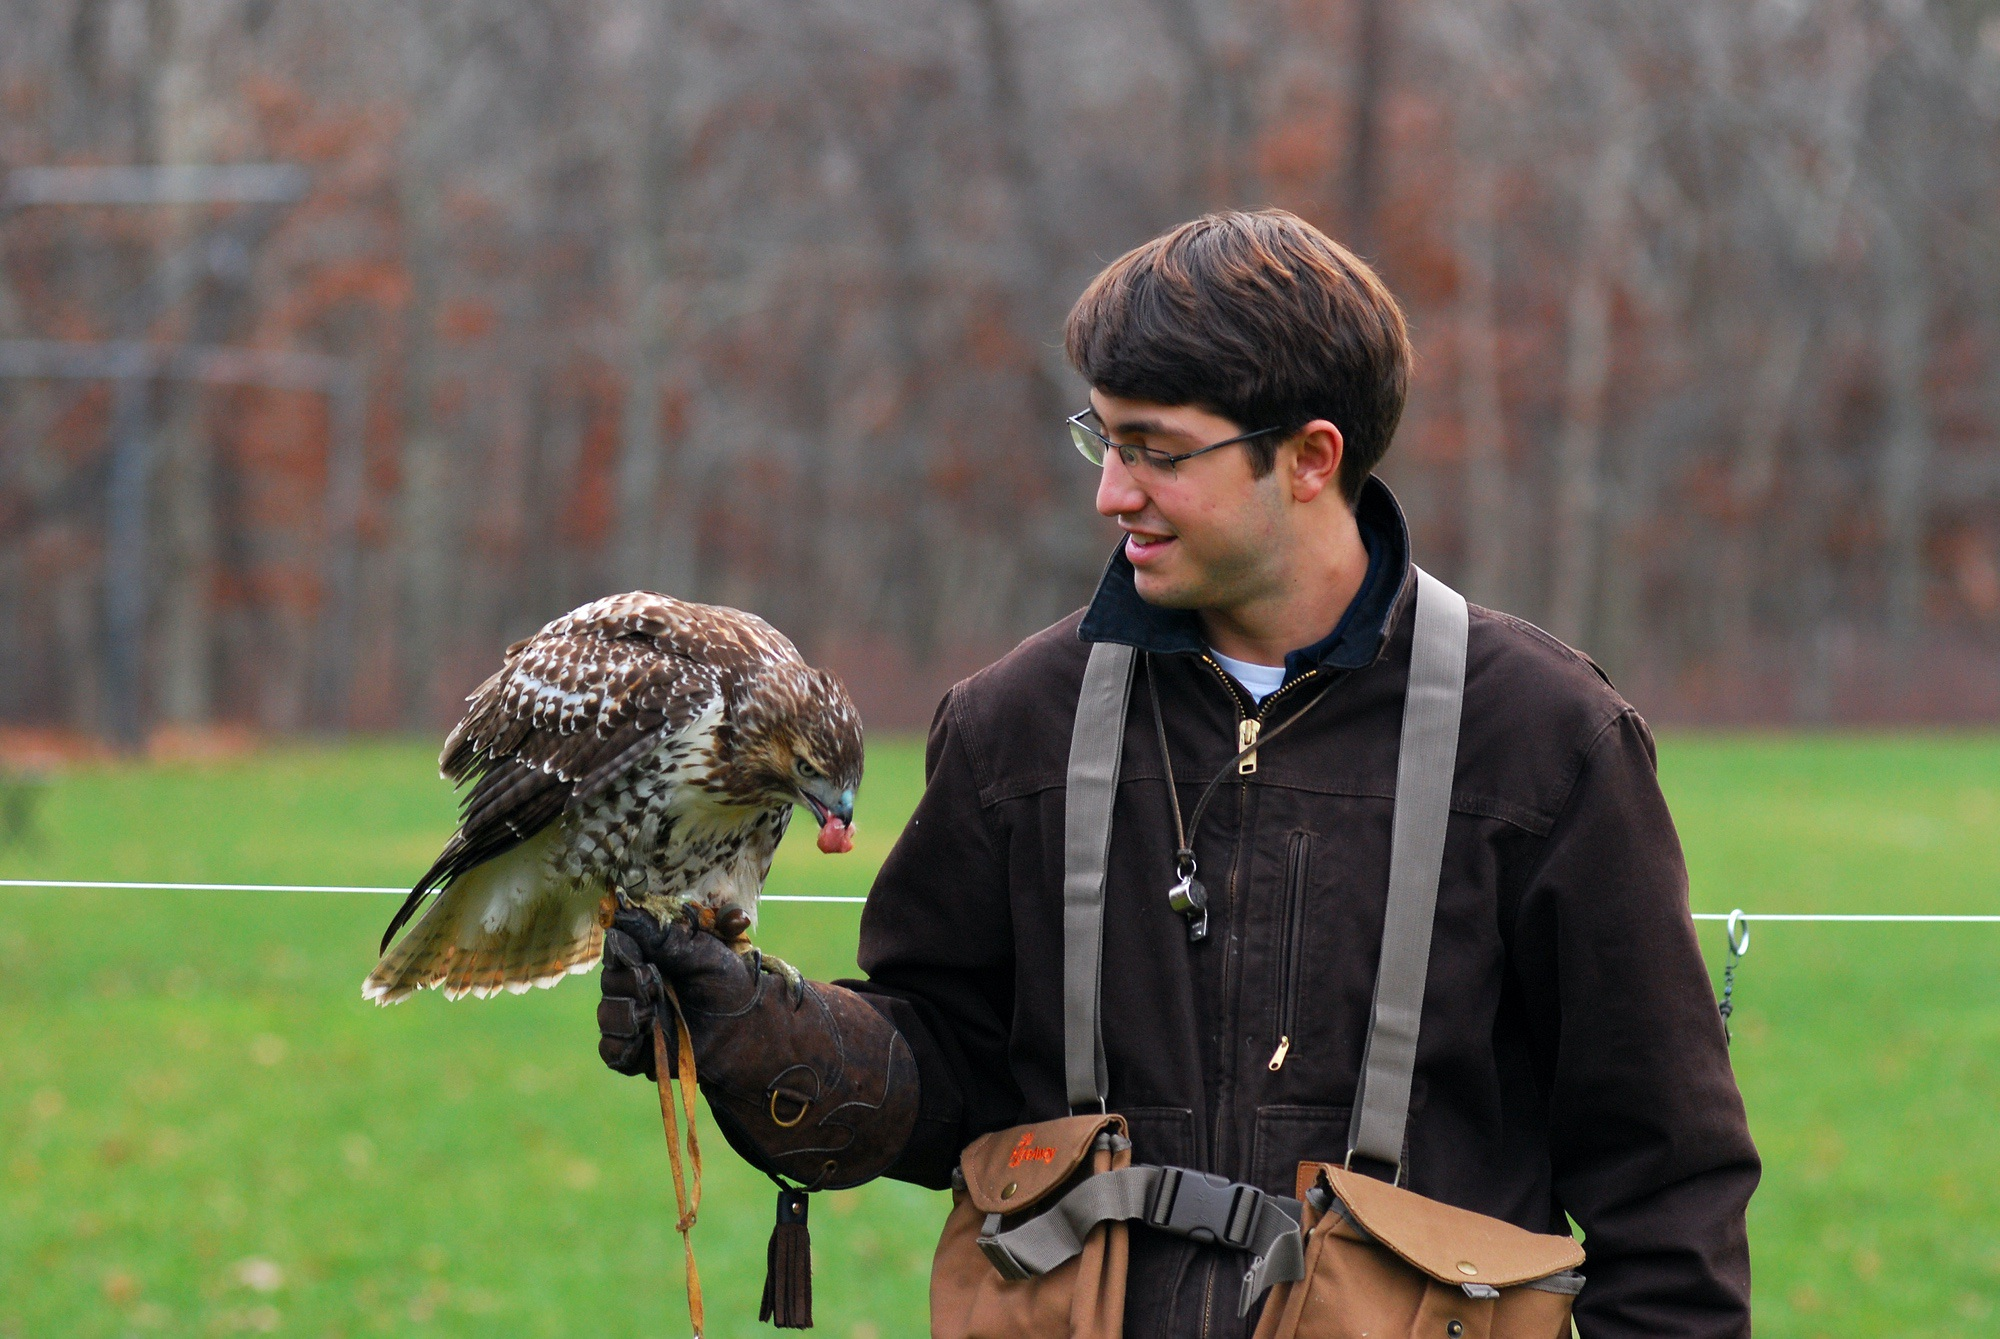 Samuel Kramer '13 with a red-tailed hawk he trained for his Senior Project on falconry